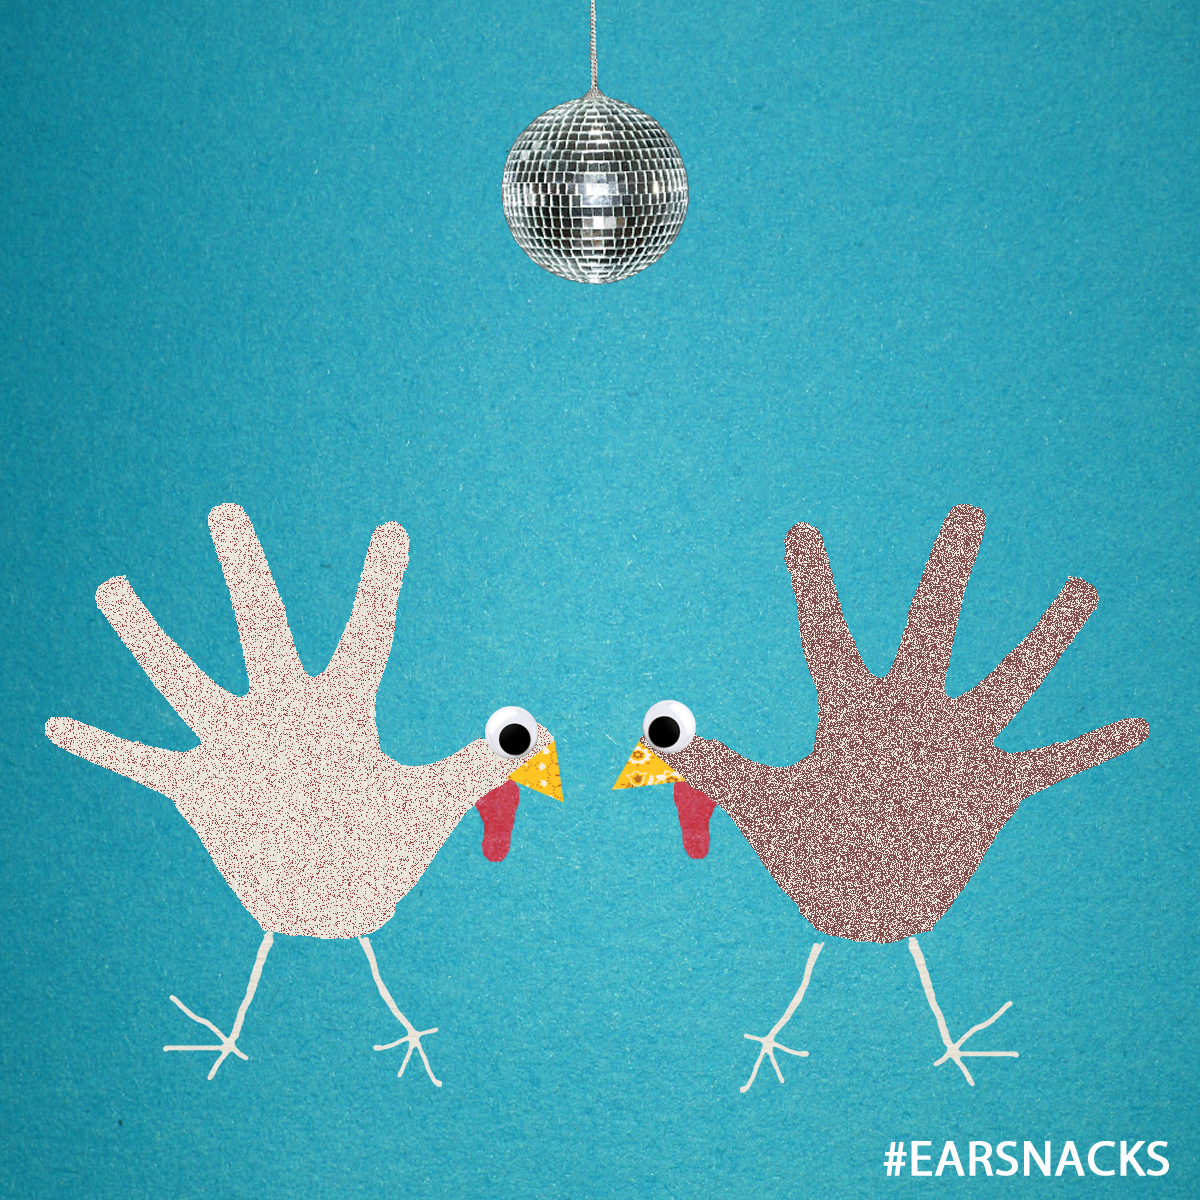 WATCH OUT - For turkeys on the dance floor.